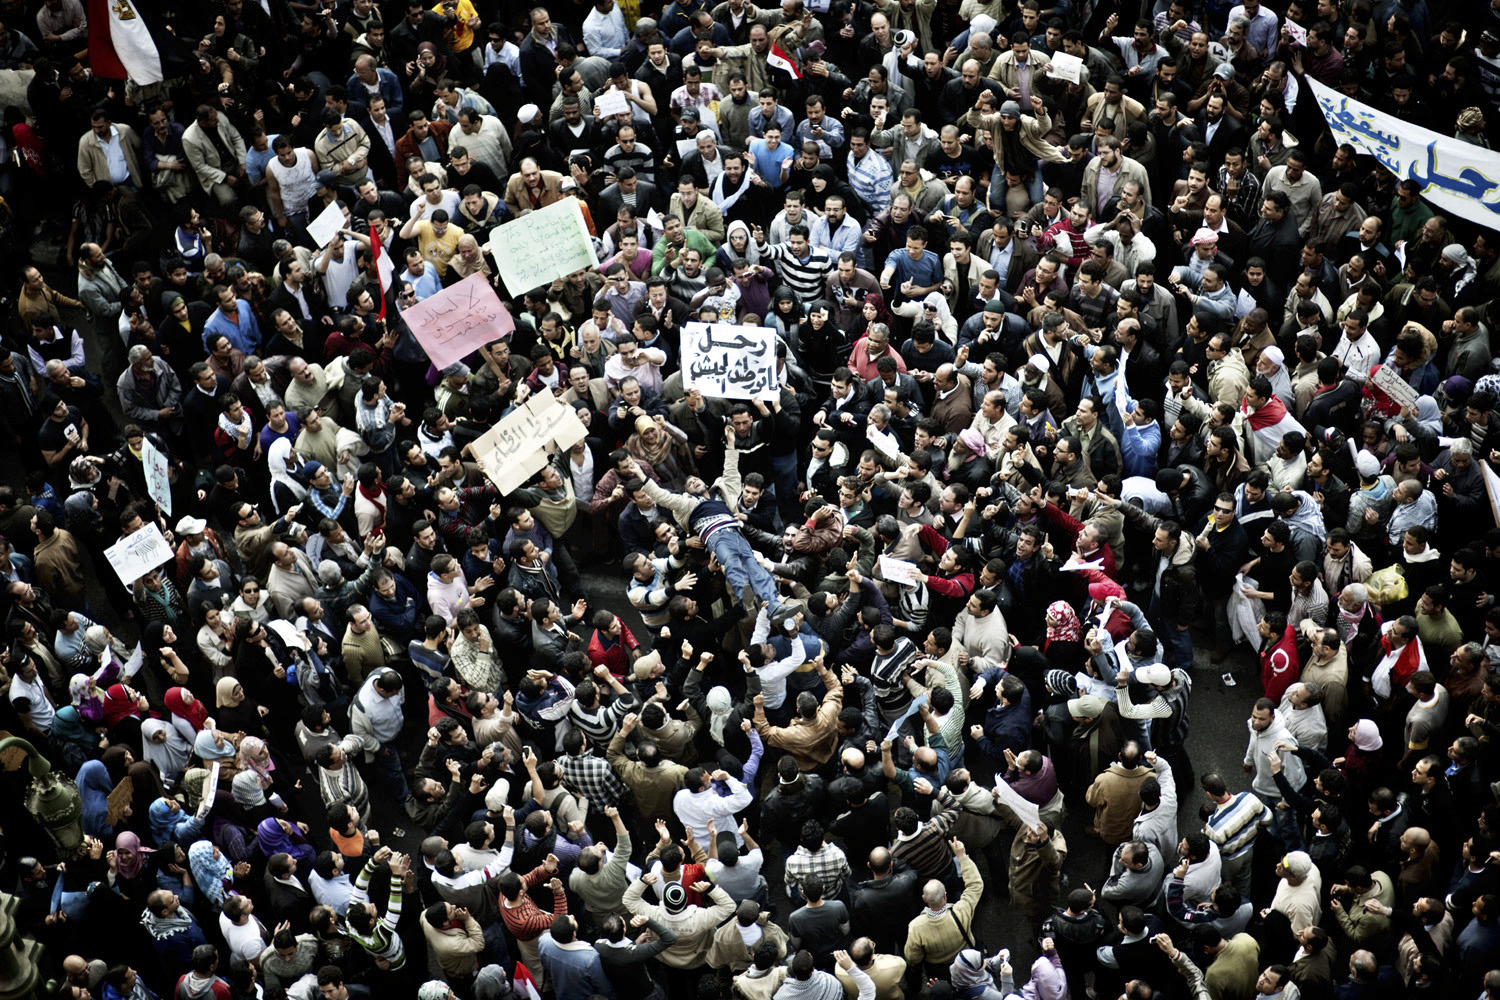 February 1, 2011. A crowd lifts a demonstrator during a protest march in Cairo's Tahrir Square.